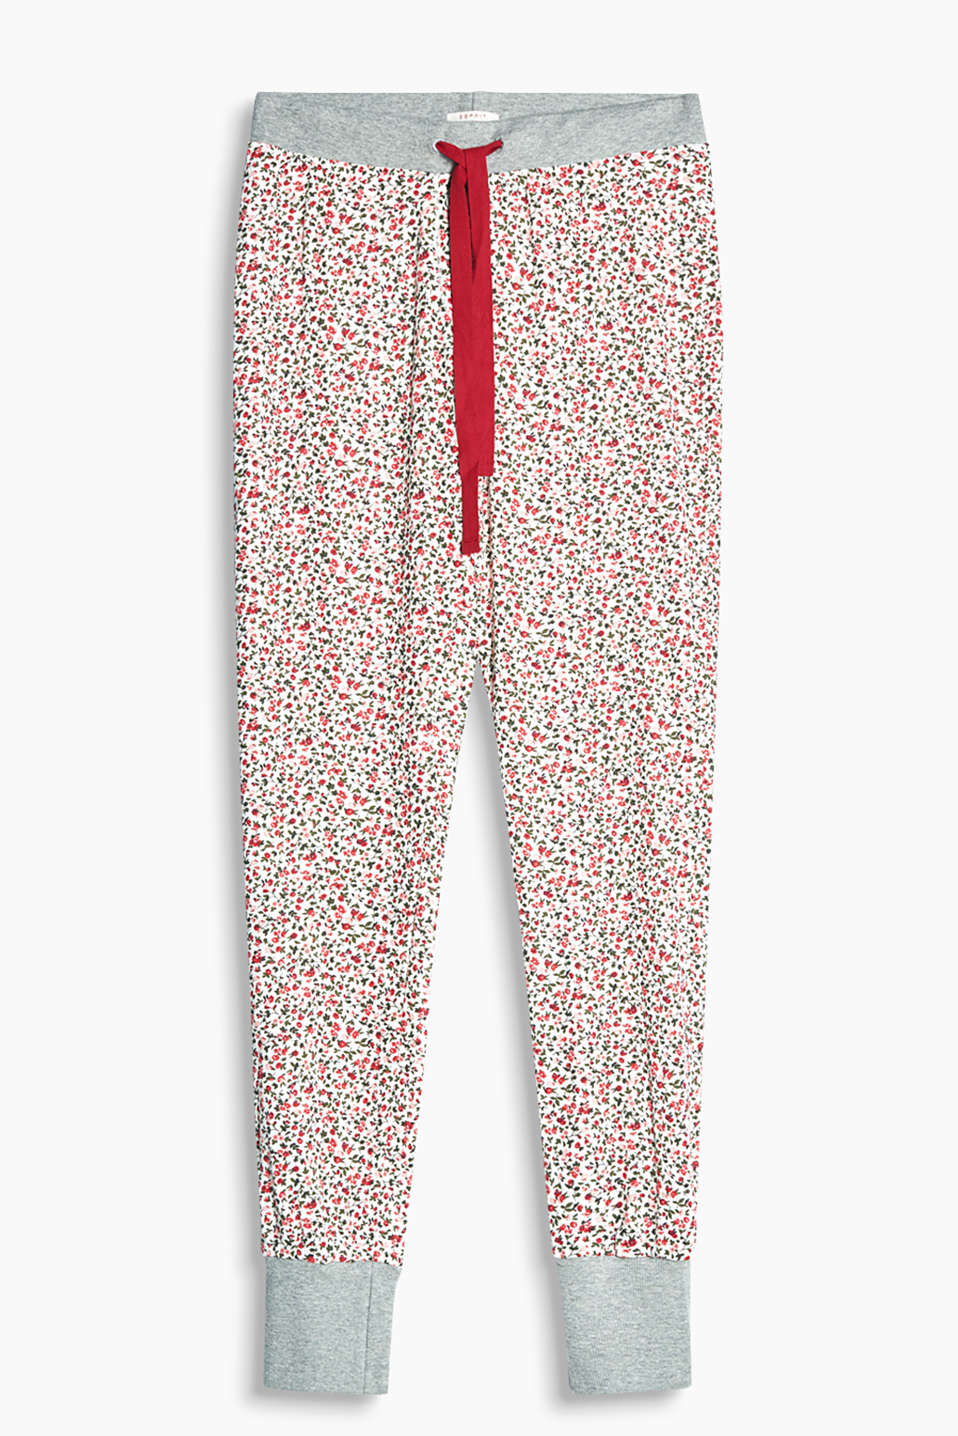 Lightweight jersey pyjama bottoms with an all-over floral print and elasticated waistband